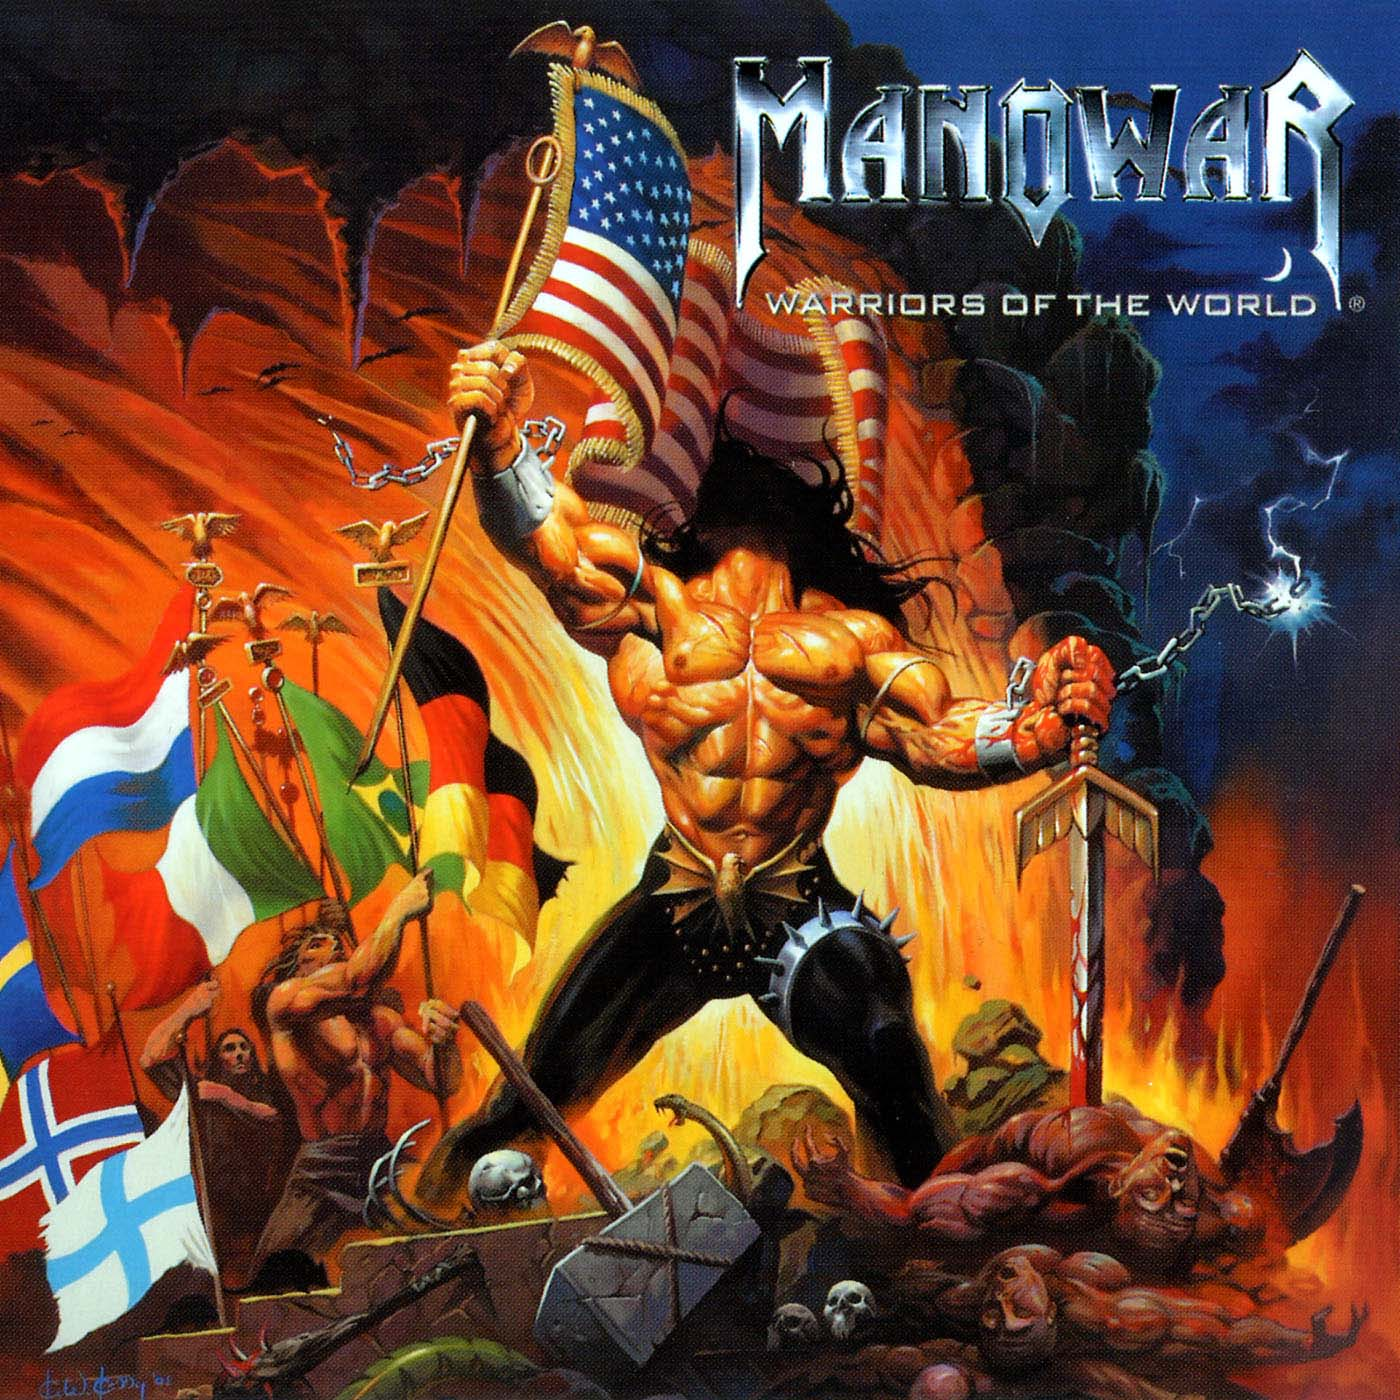 http://3.bp.blogspot.com/-aN2RUnyYRvA/Tqbk6nmi8JI/AAAAAAAAAOw/q7W0GauMoeA/s1600/Manowar-Warriors_Of_The_World-Frontal.jpg